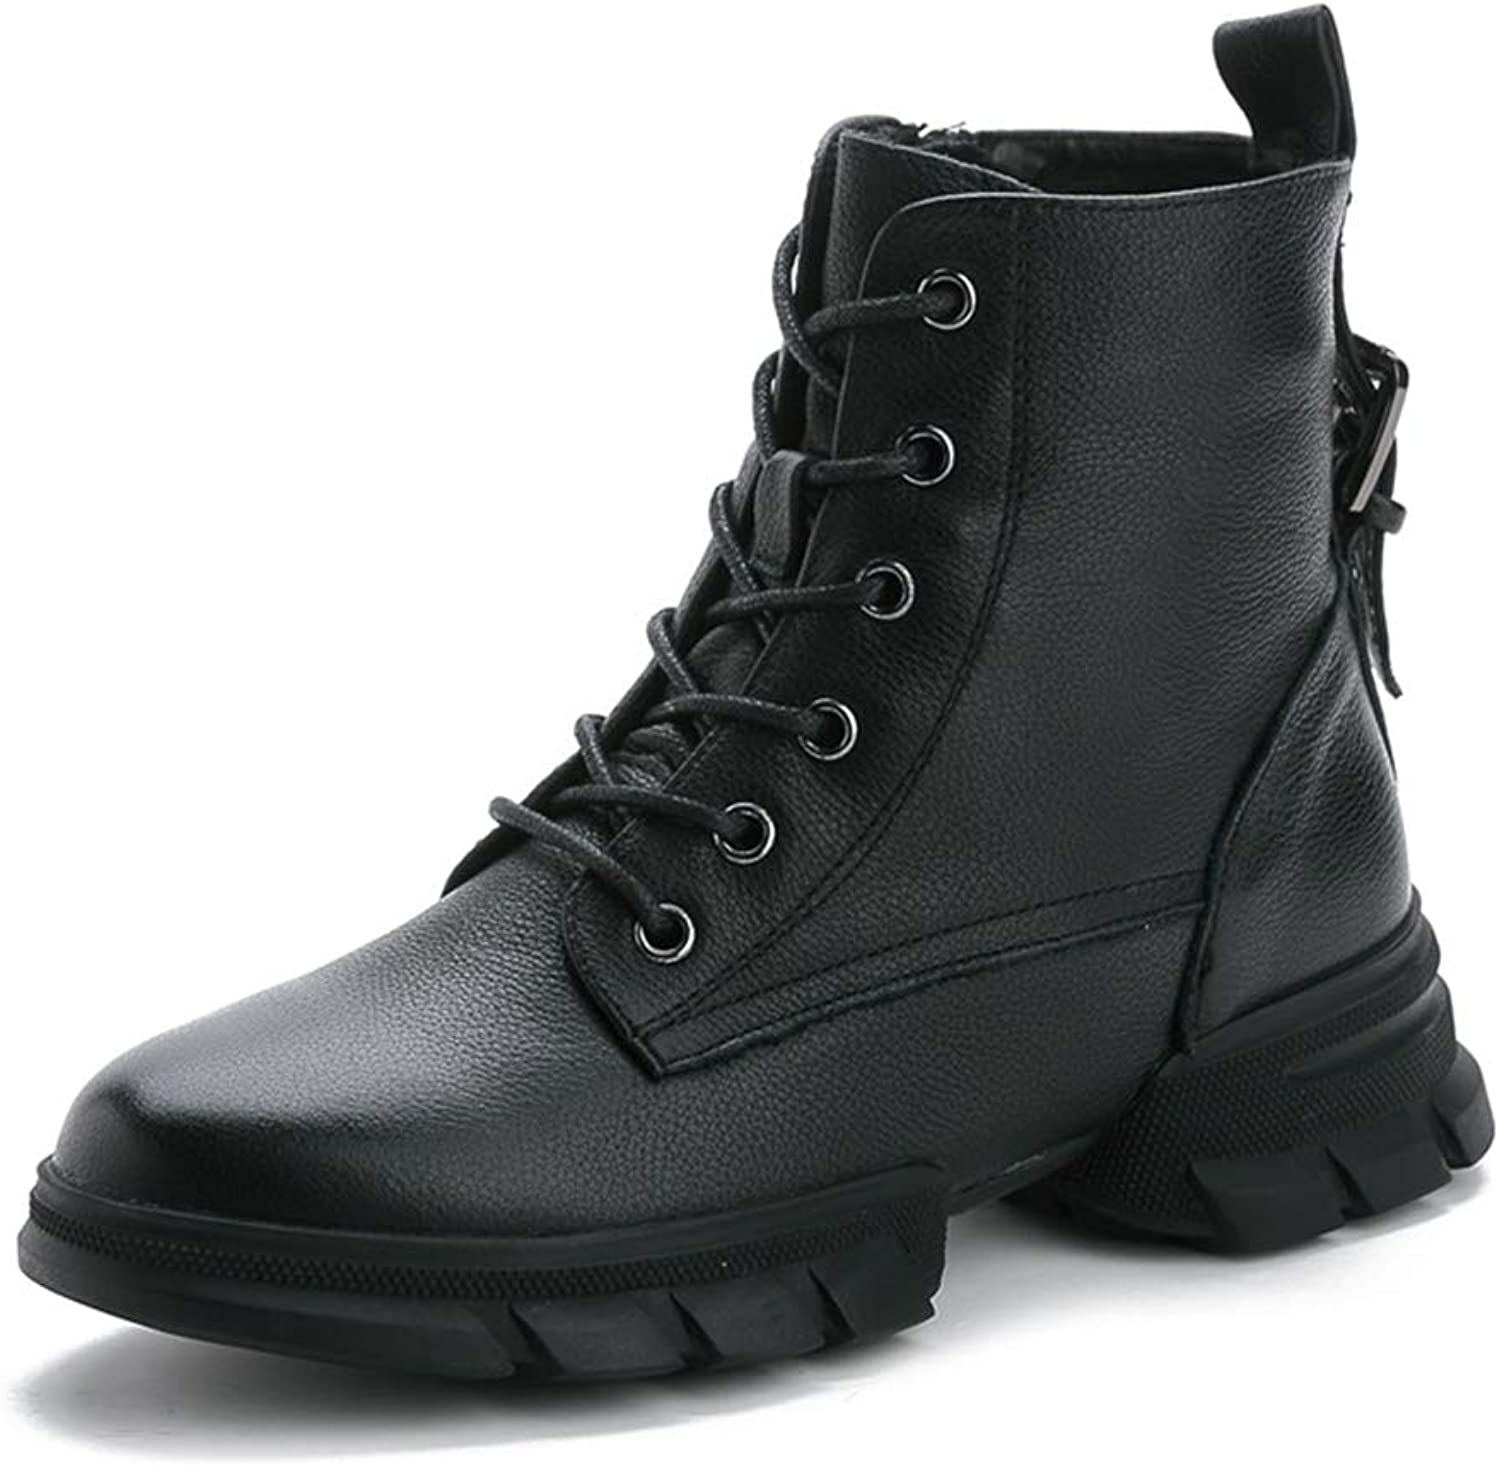 BREAORTION Women's Casual Lace-up Athletic Ankle Boots Ladies Fashion Rubber Sole Martin Boots